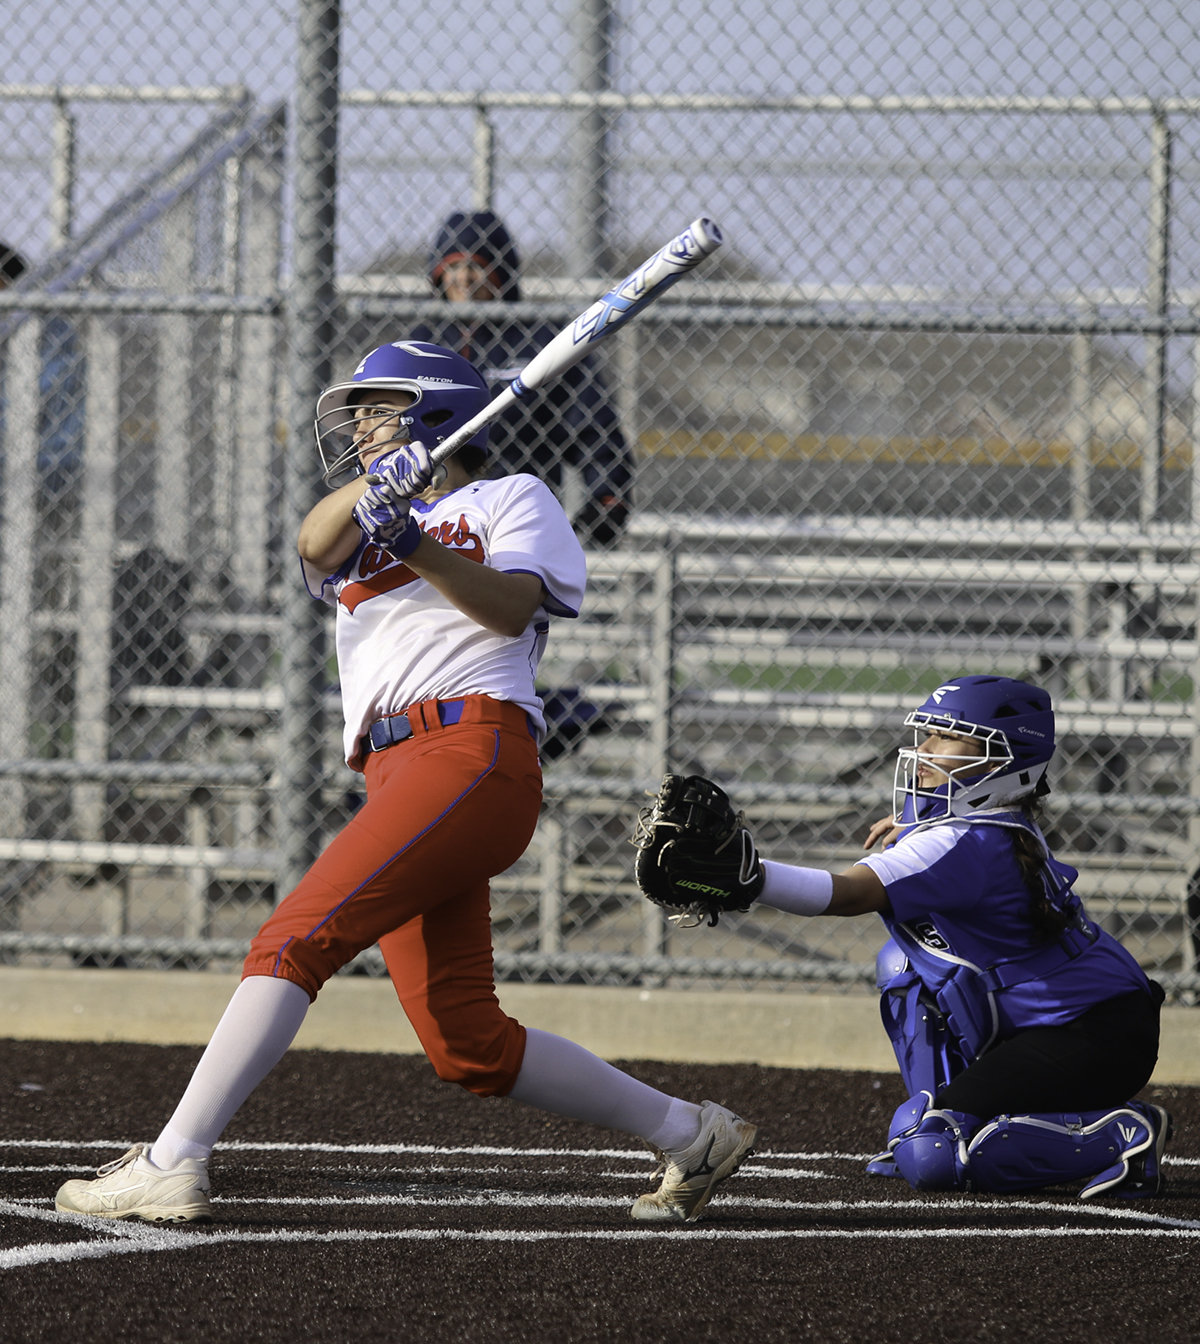 Junior pitcher Seleen Donohoe drives the ball out during a recent game. (Victoria Sanchez photo)